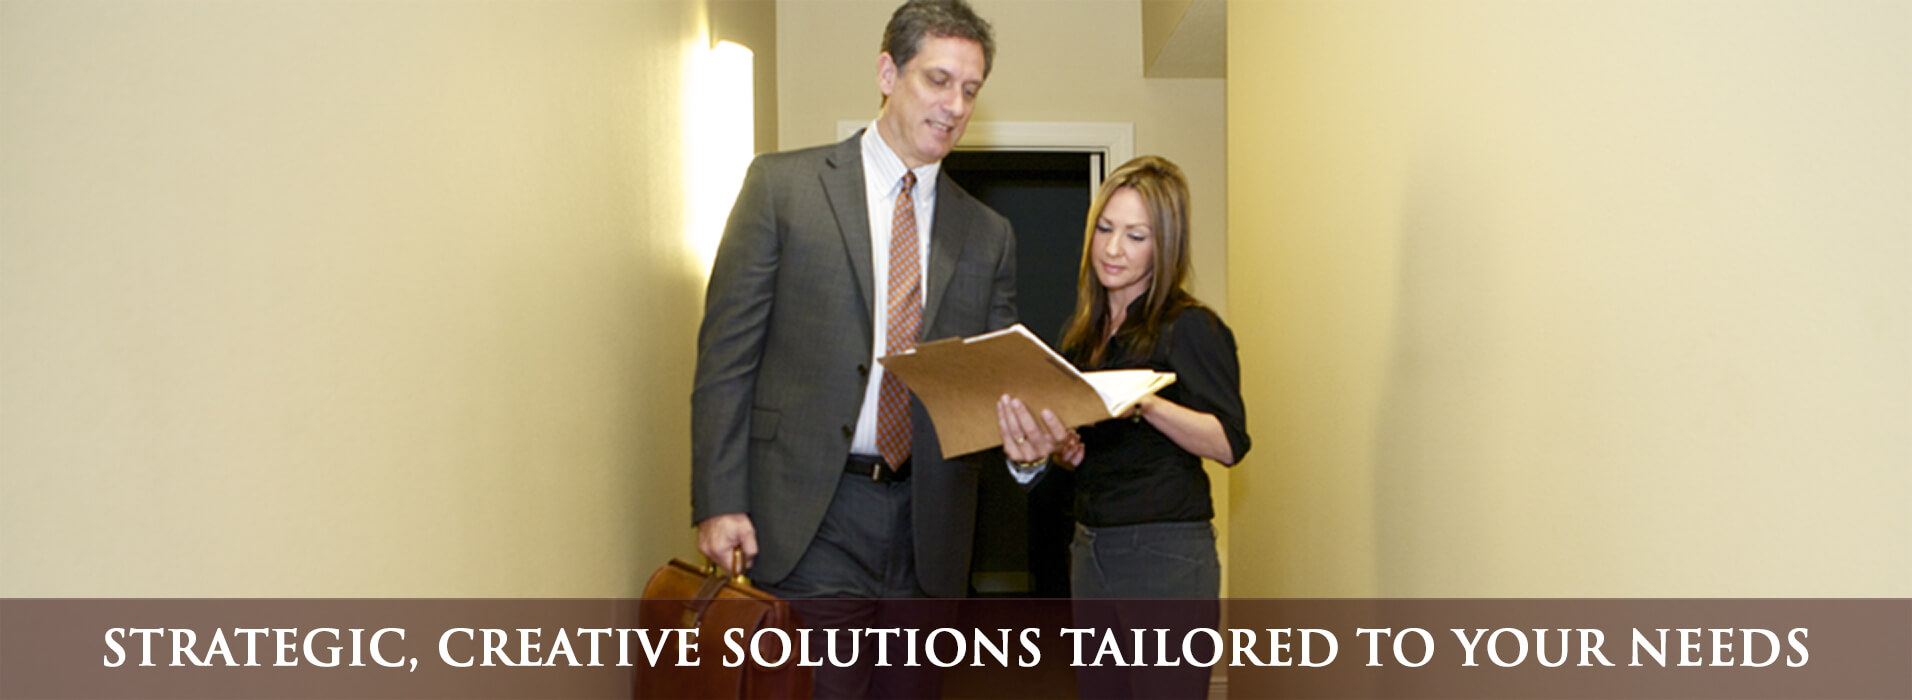 sarasota commercial litigation lawyer